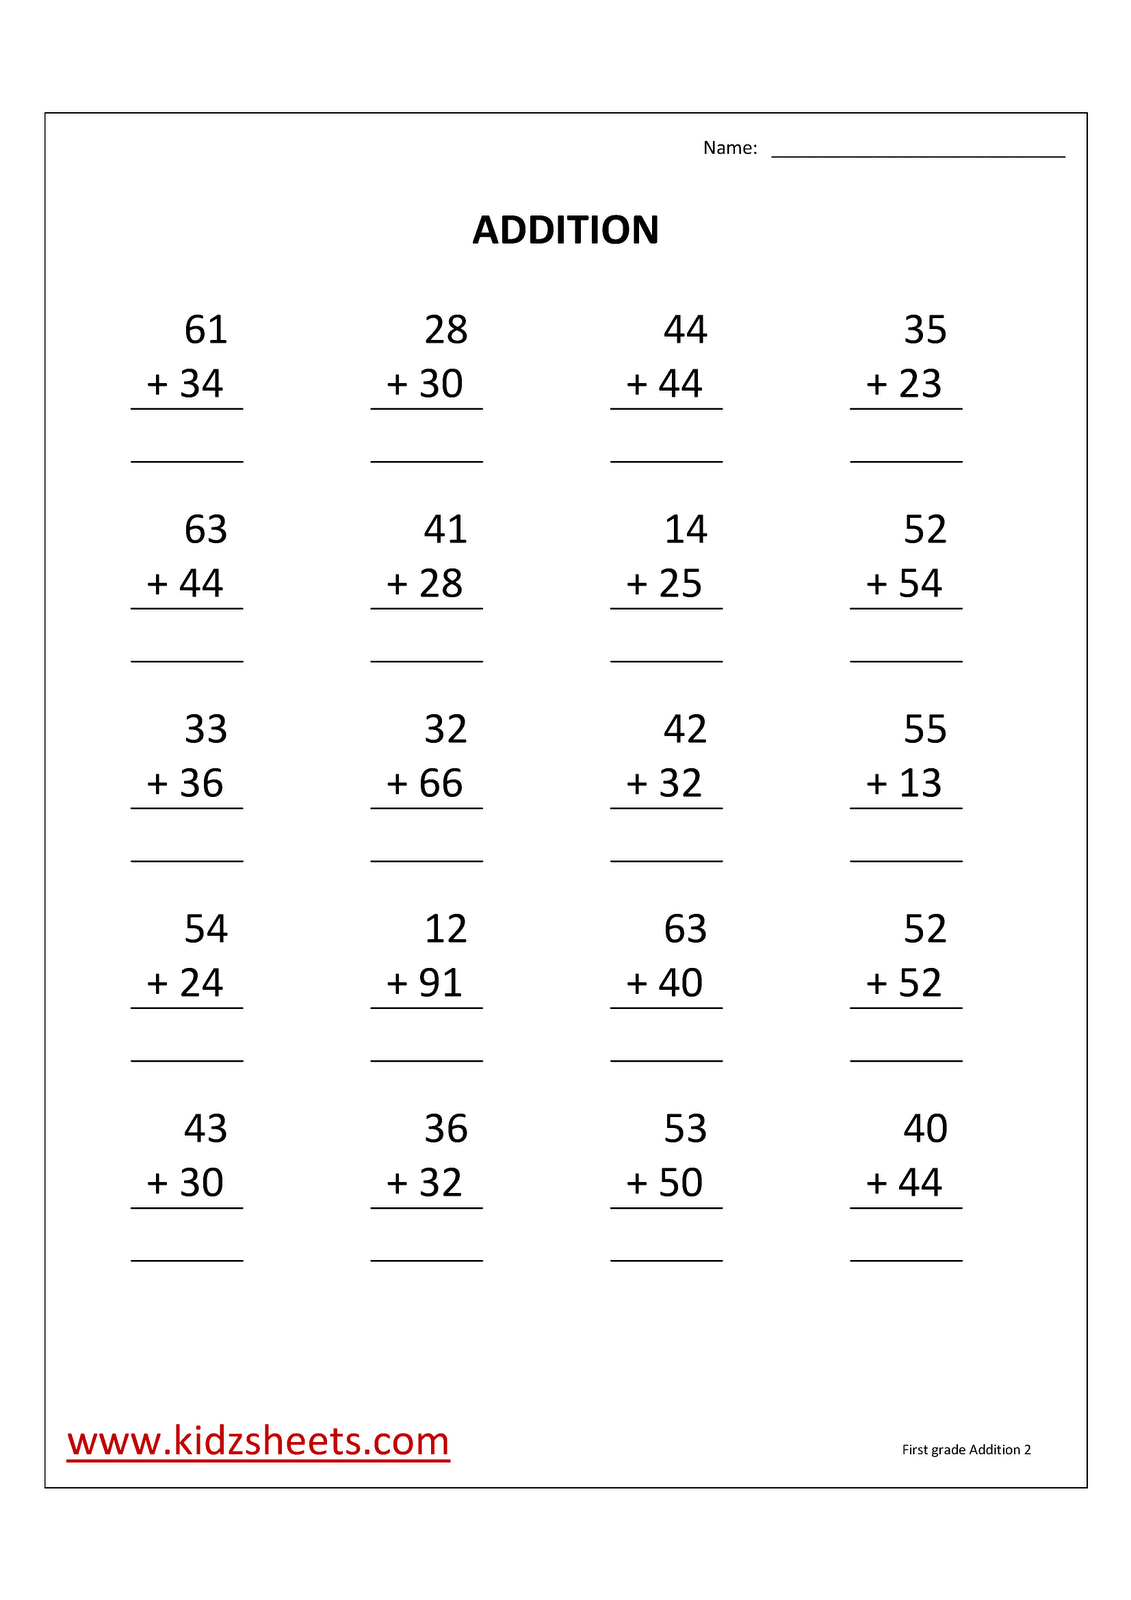 First Grade Math Addition Worksheets   2nd grade math worksheets [ 1600 x 1131 Pixel ]